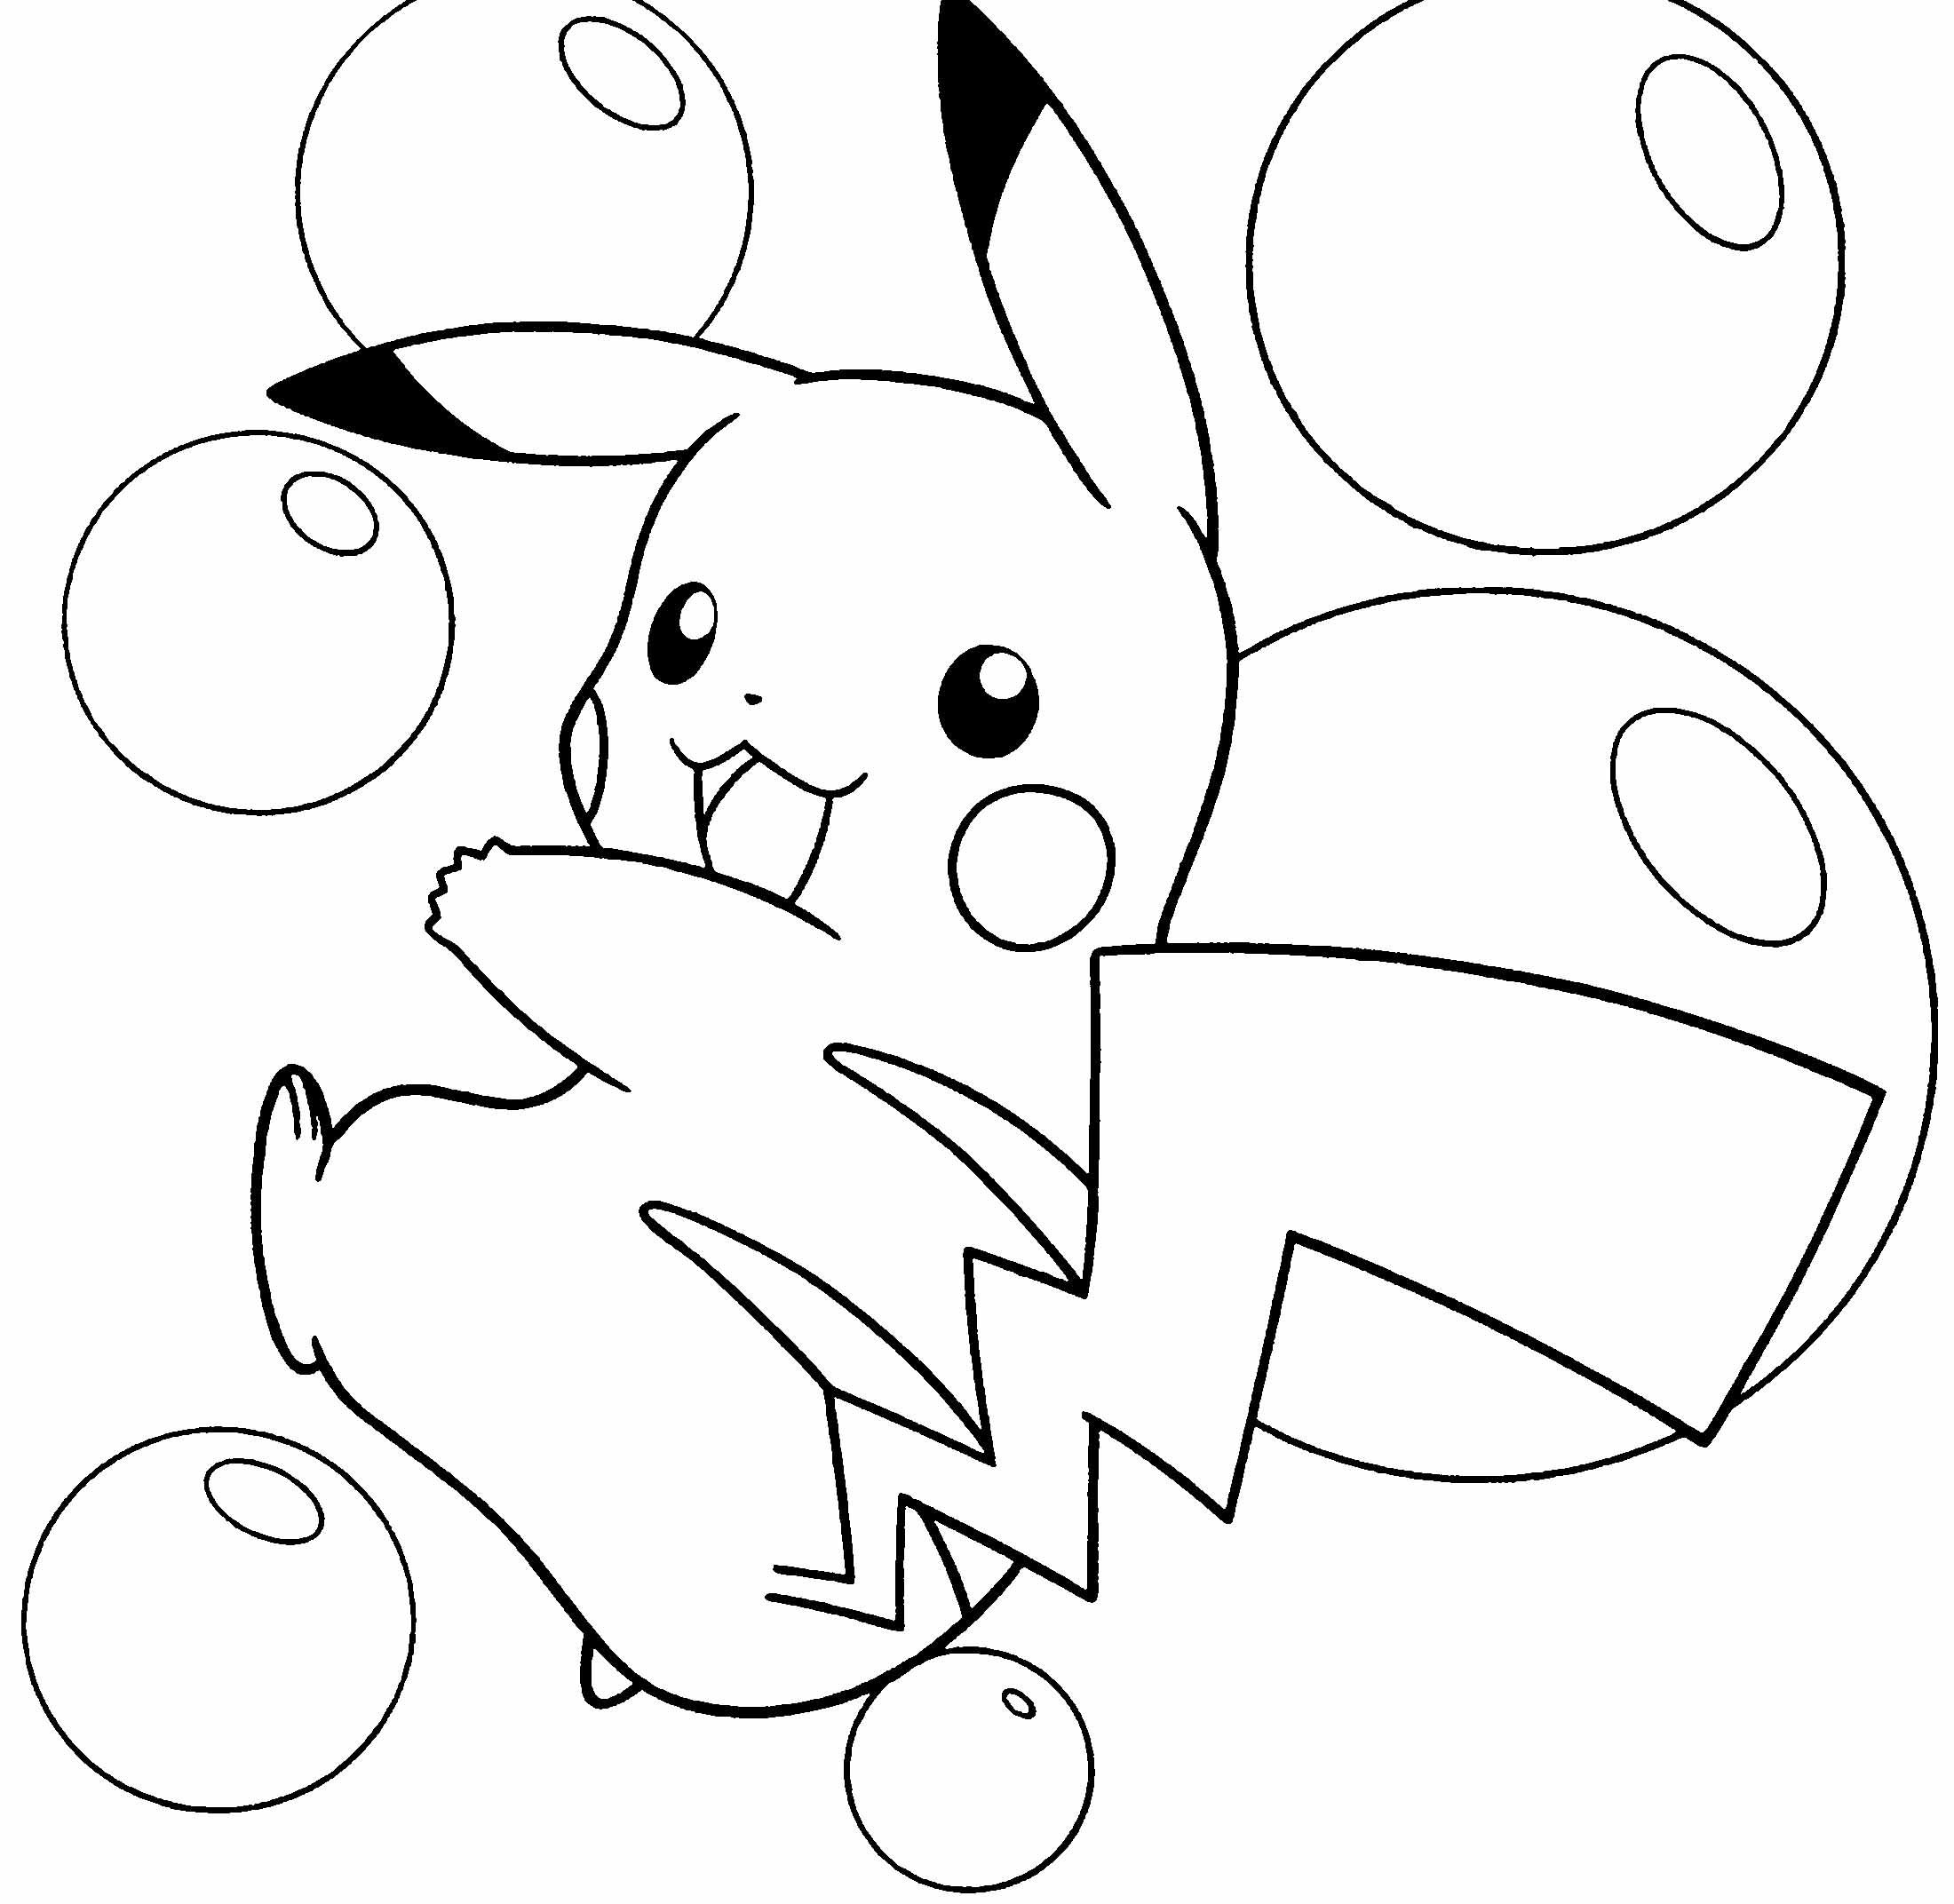 pikachu coloring pages Pikachu coloring page, Pokemon